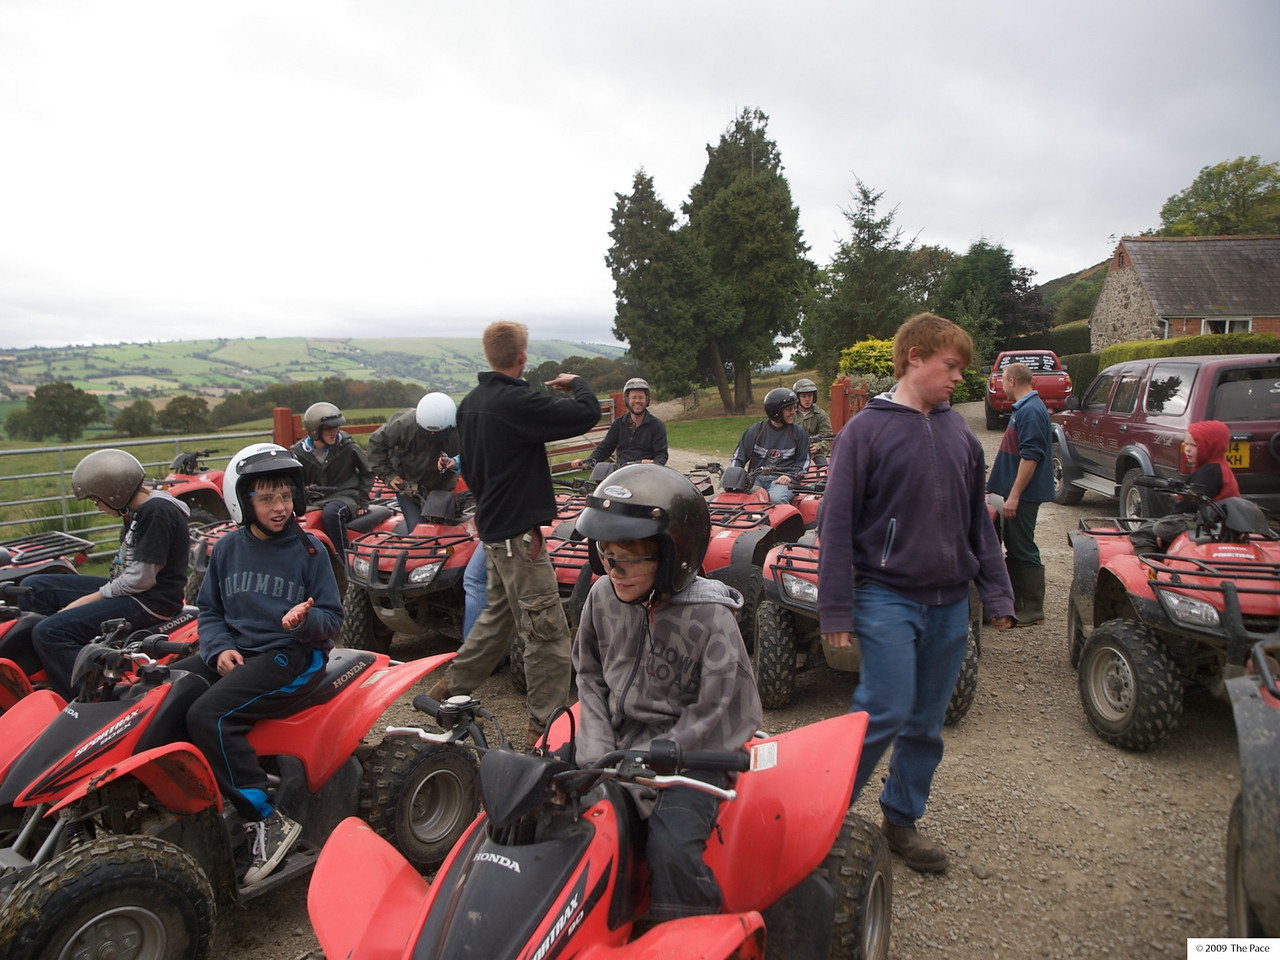 Monday 11th Oct 2009 - I organise a group quad trekking event